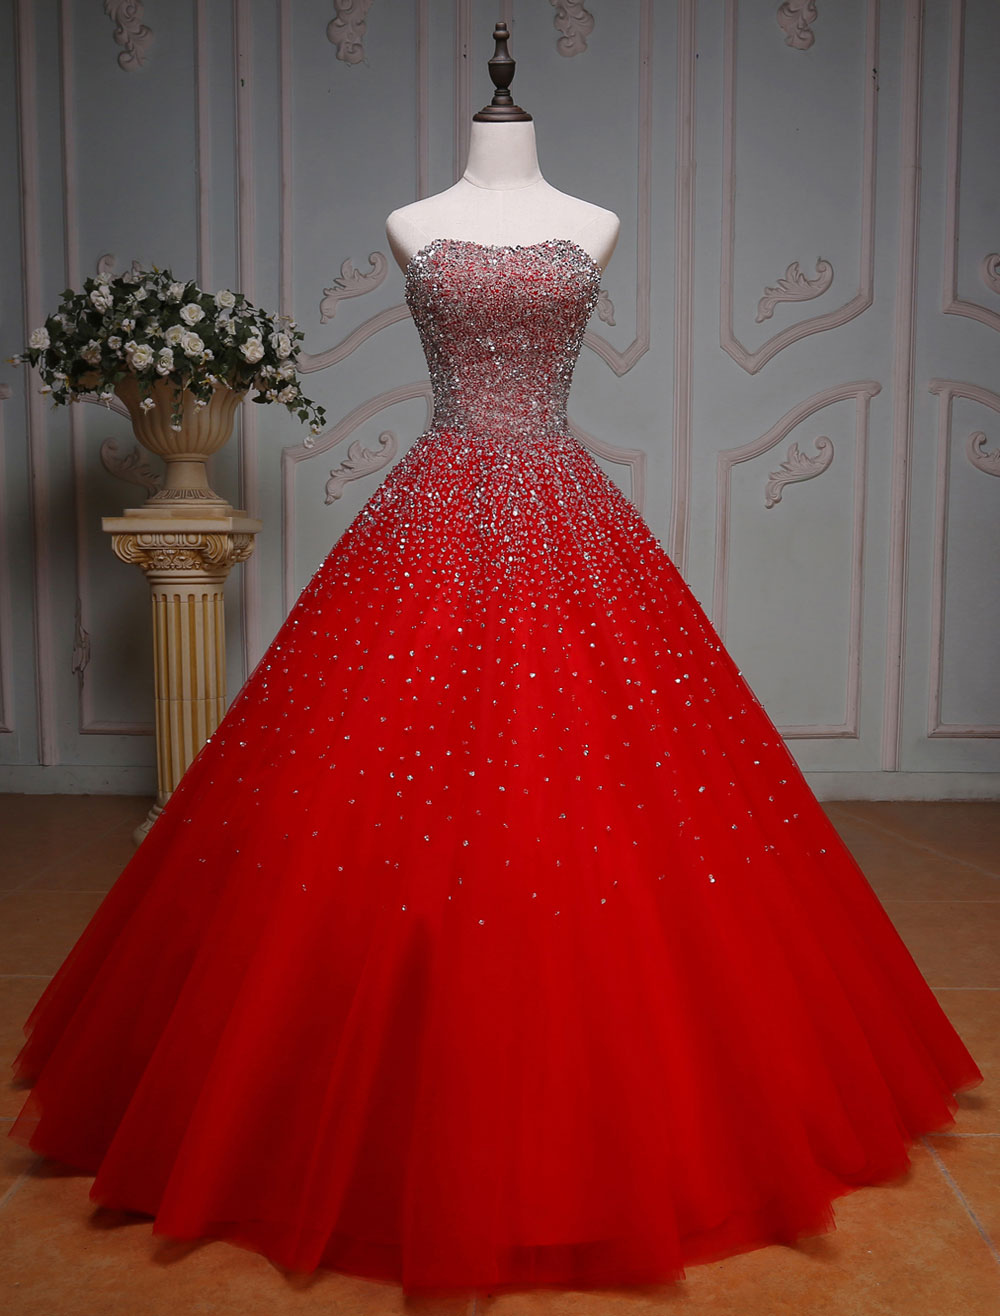 Buy Luxury Quinceanera Dresses Princess Red Strapless Beading Shiny Women's Floor Length Pageant Dresses for $289.79 in Milanoo store